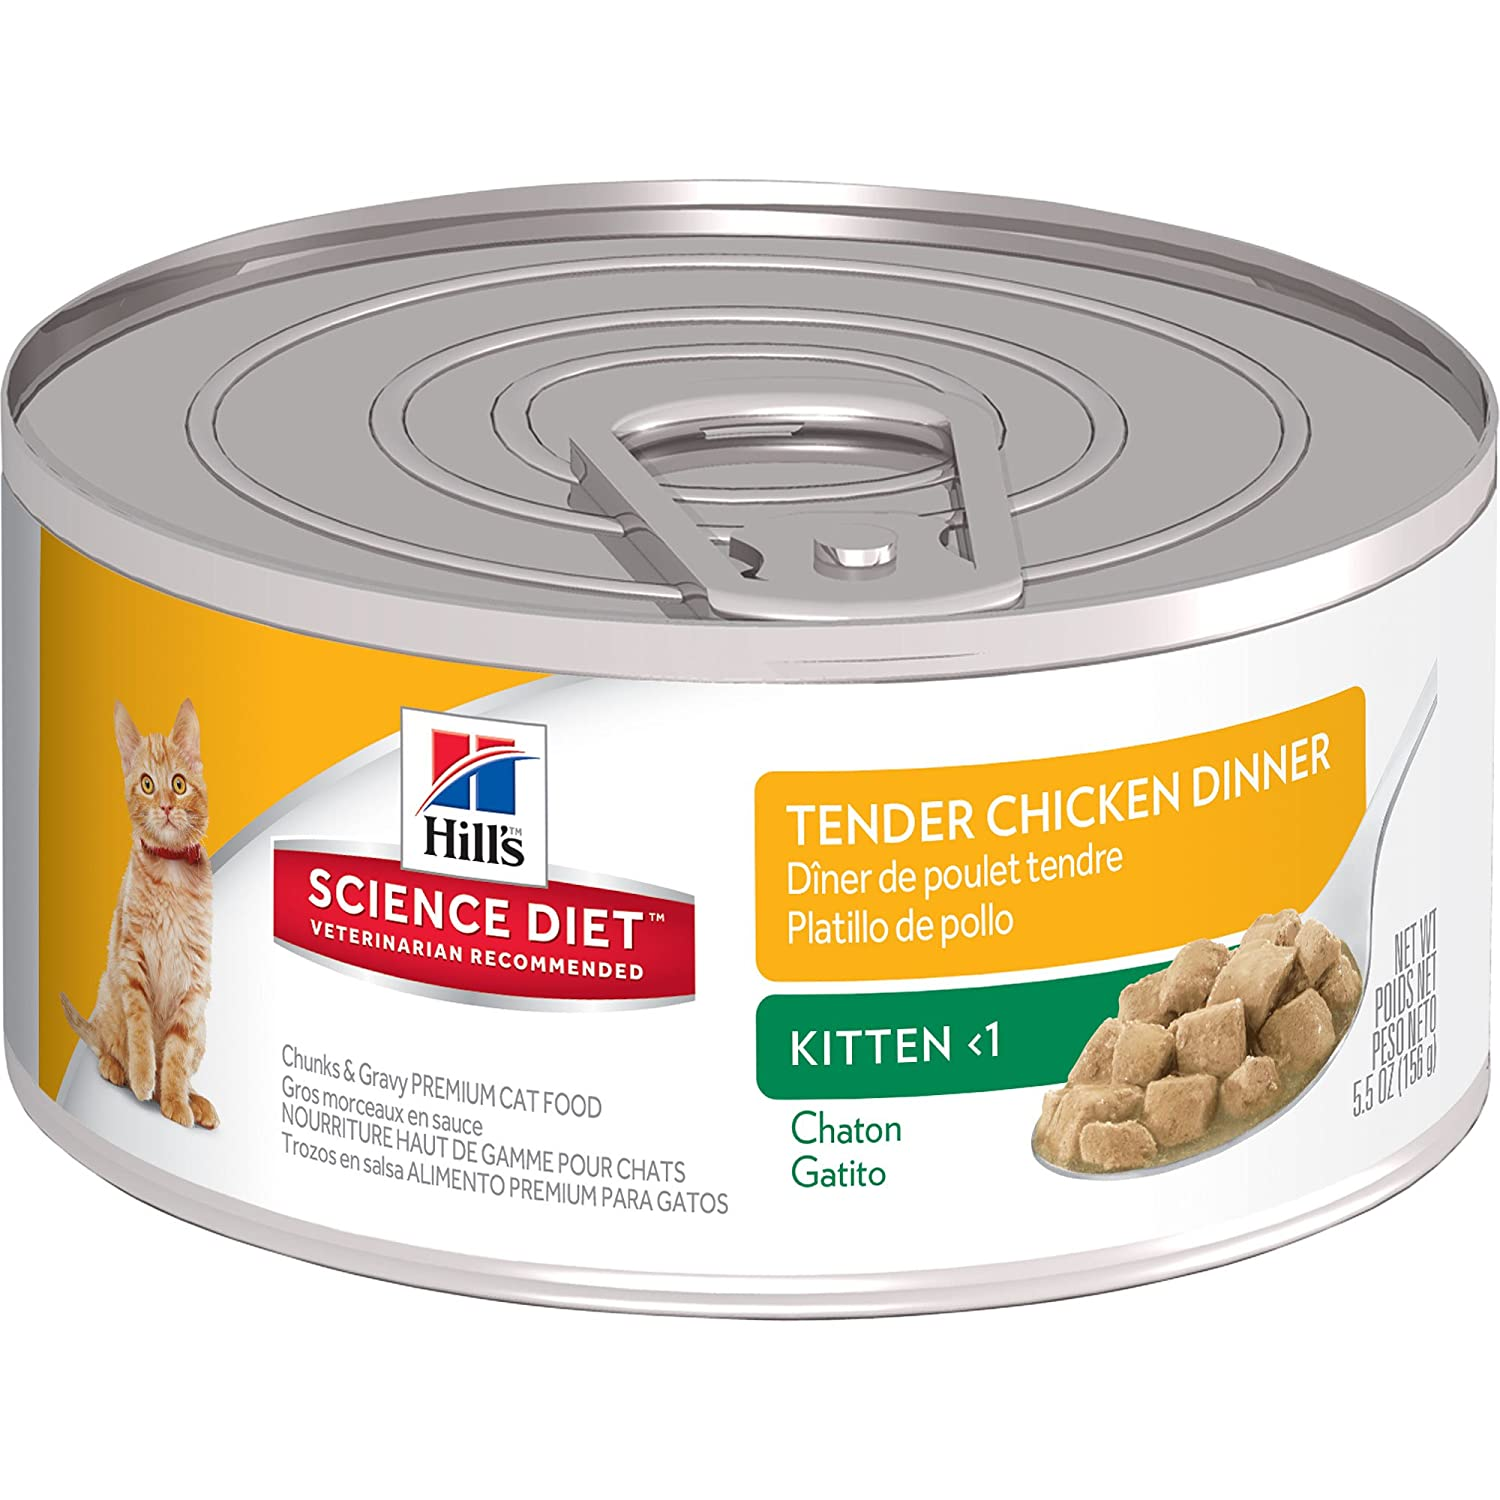 Amazon Com Hill S Science Diet Kitten Tender Chicken Dinner Chunks And Gravy Cat Food Can 5 5 Ounce 24 Pack Dry Pet Food Pet Supplies